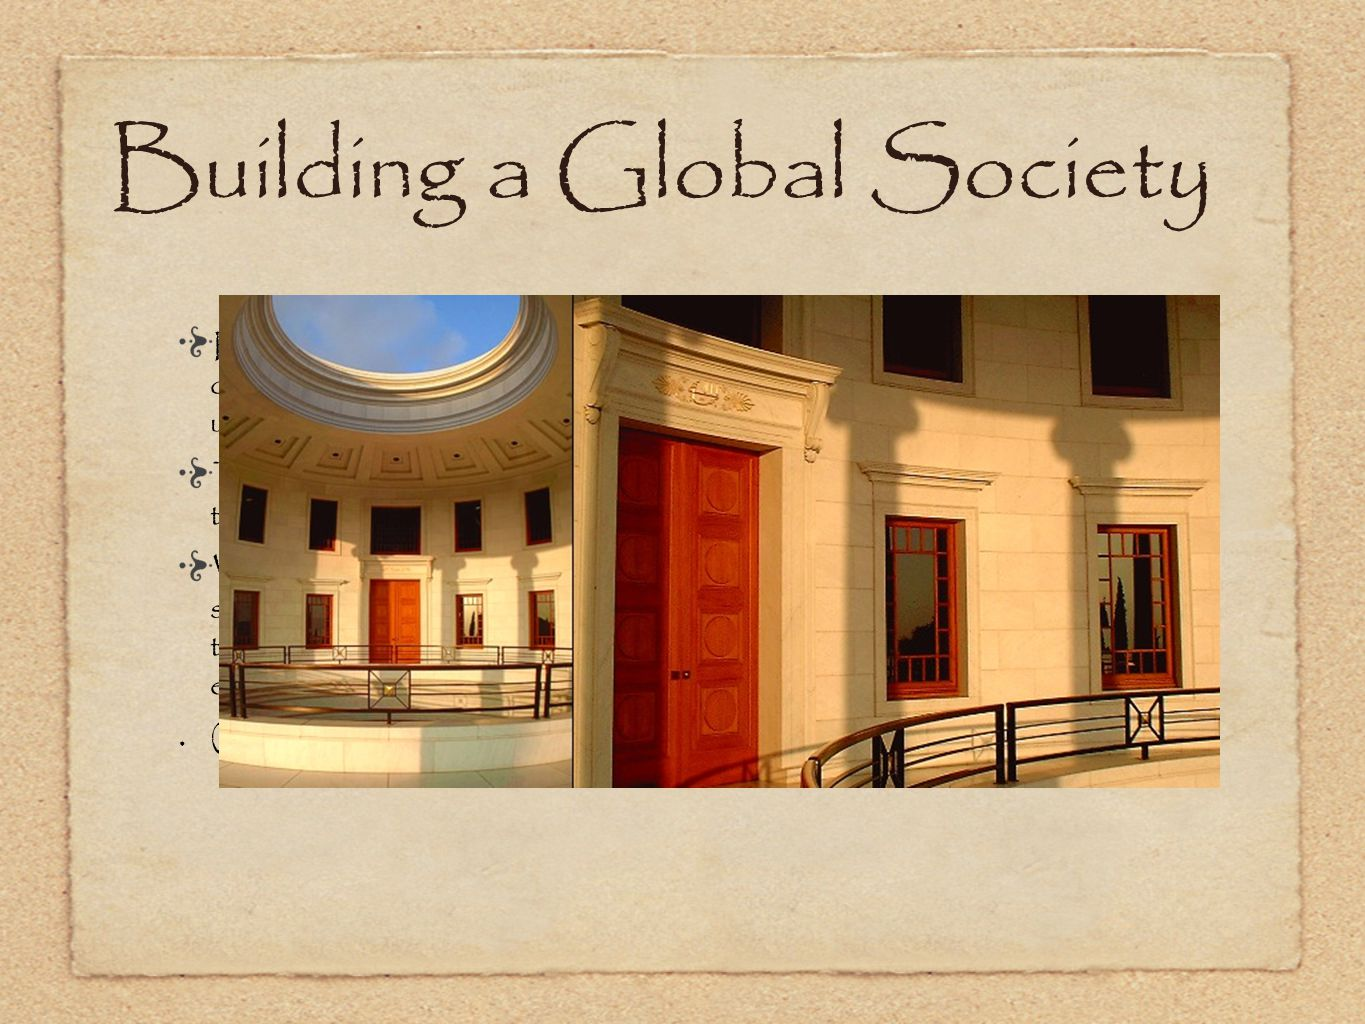 Building a Global Society Realization of the uniqueness of what Bahá u lláh has brought into being opens the imagination to the contribution that the Cause can make to the unification of humankind and the building of a global society.